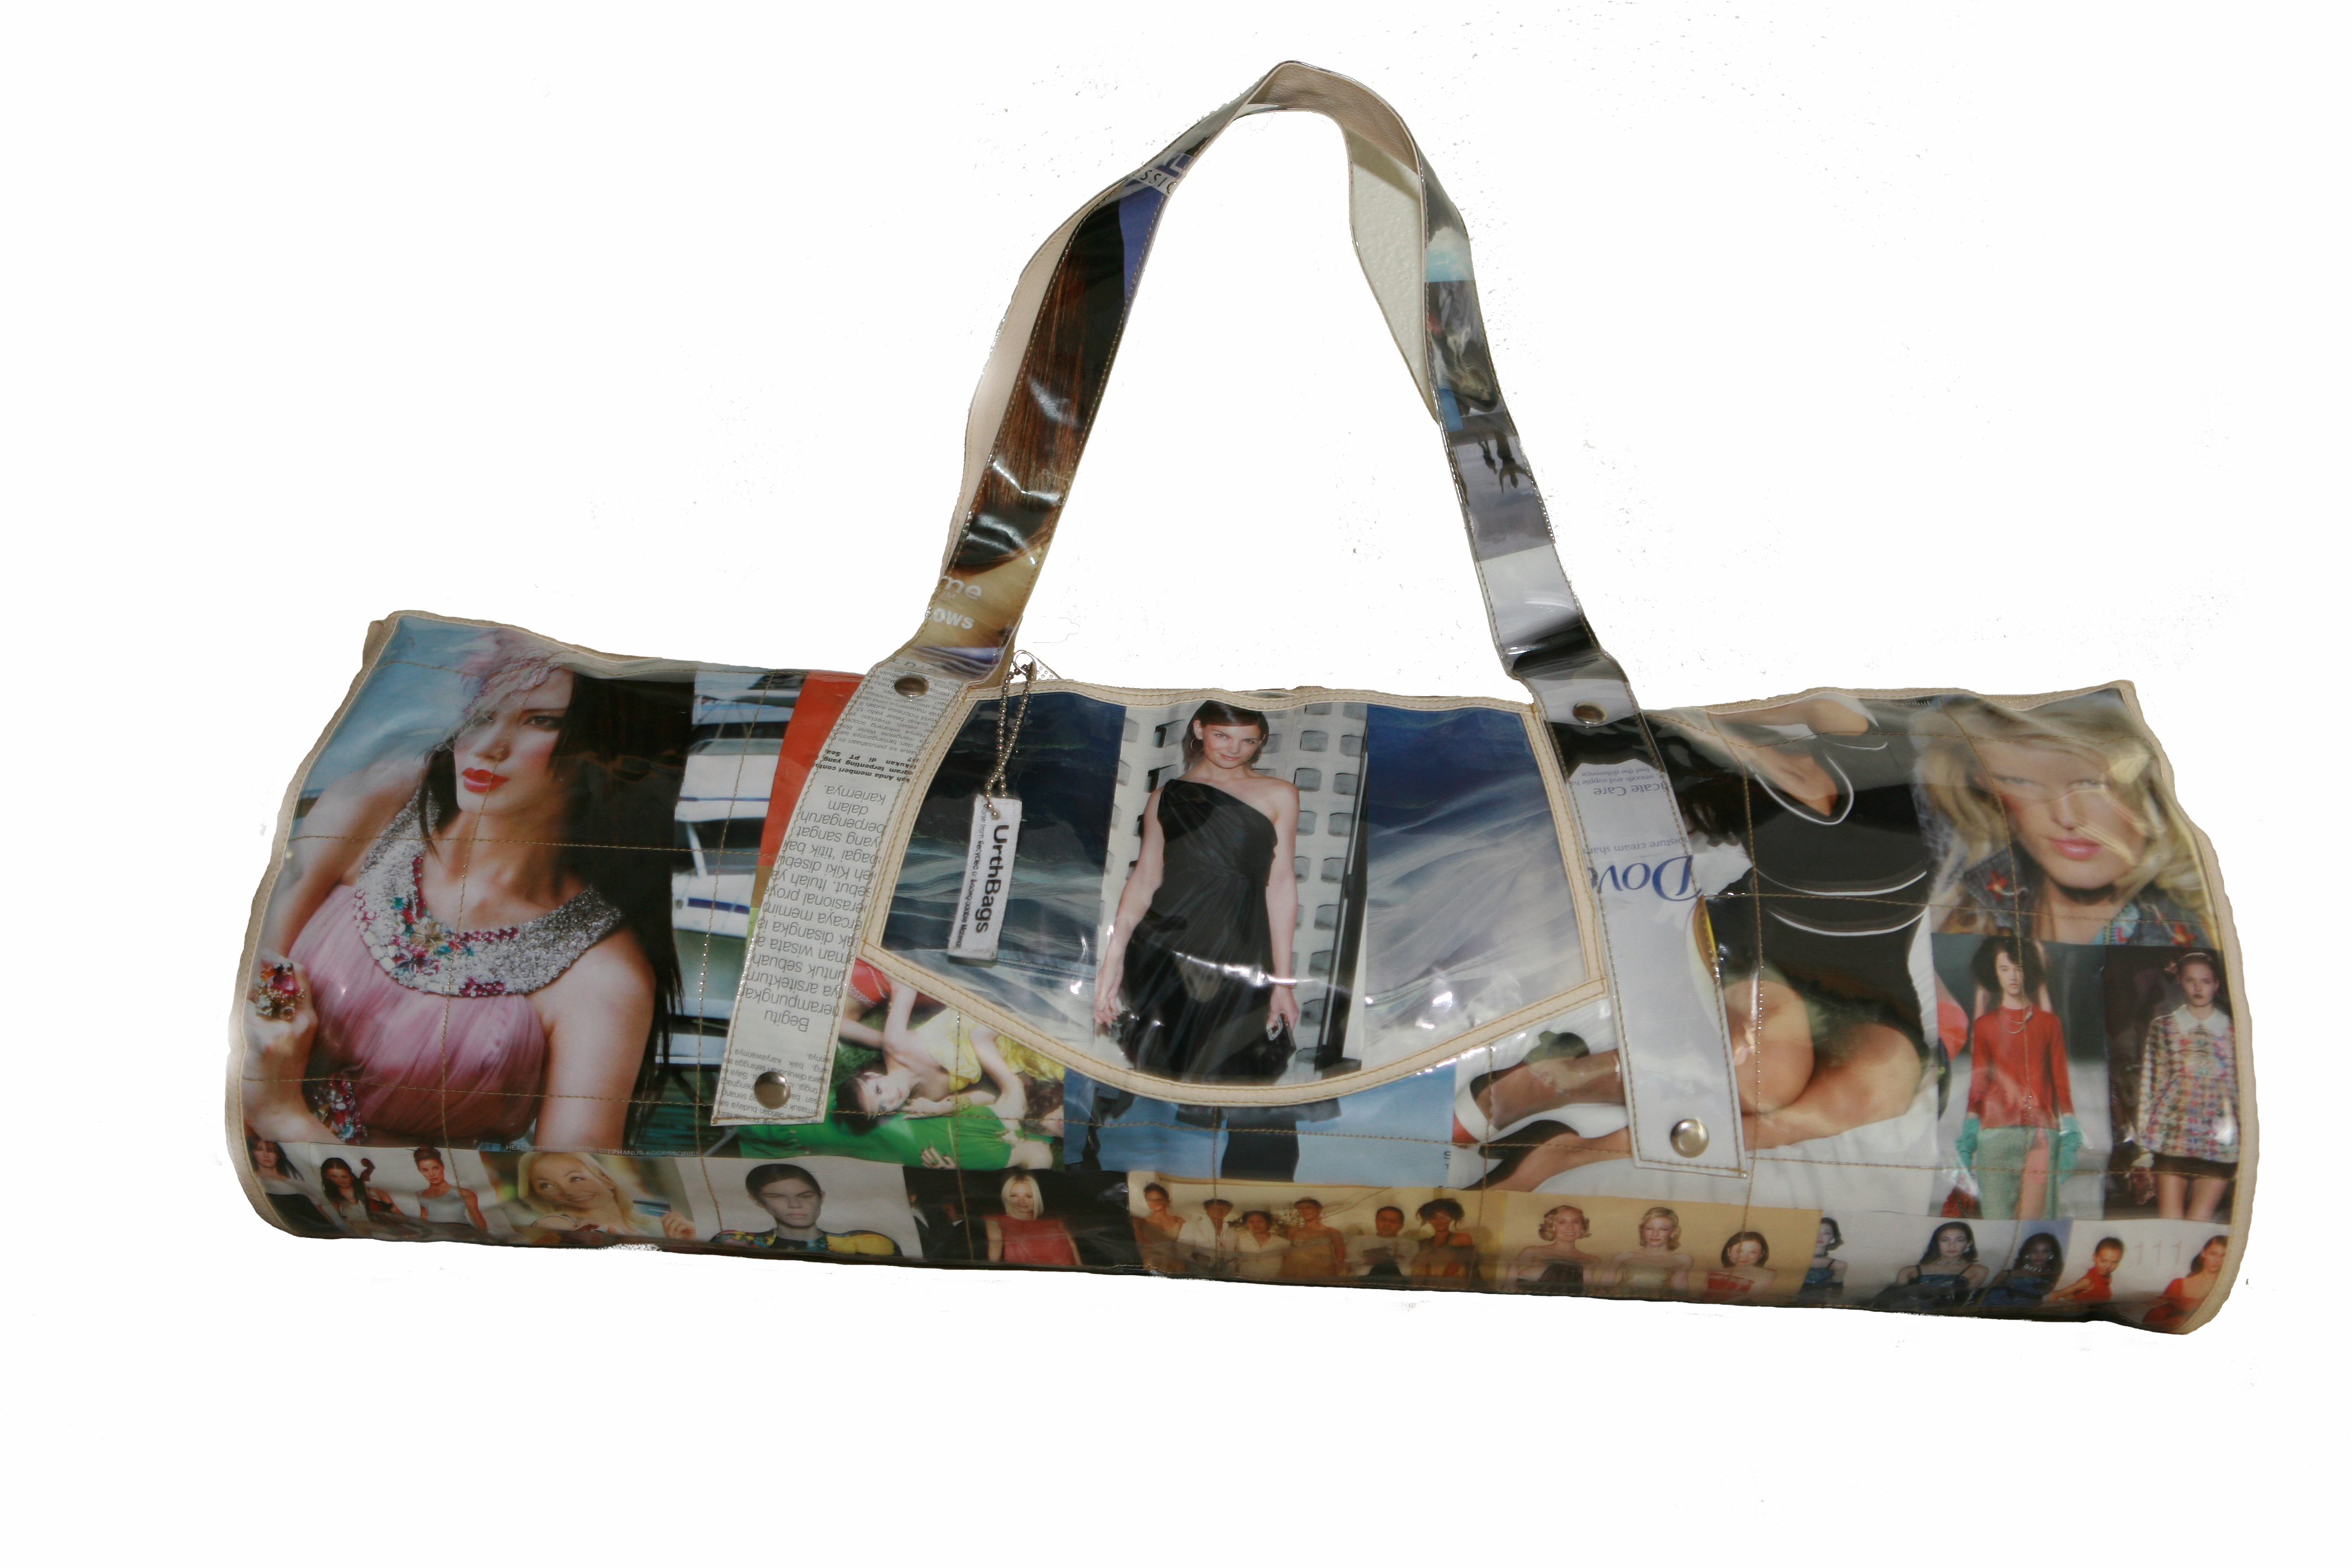 """How to Make a Recycled Tote Bag or Purse Many stores now have a """"bring your own bag"""" policy to encourage the use of reusable shopping bags. While this is great for the environment, it usually means you end up buying some form of cheap fabric bag, printed with ."""